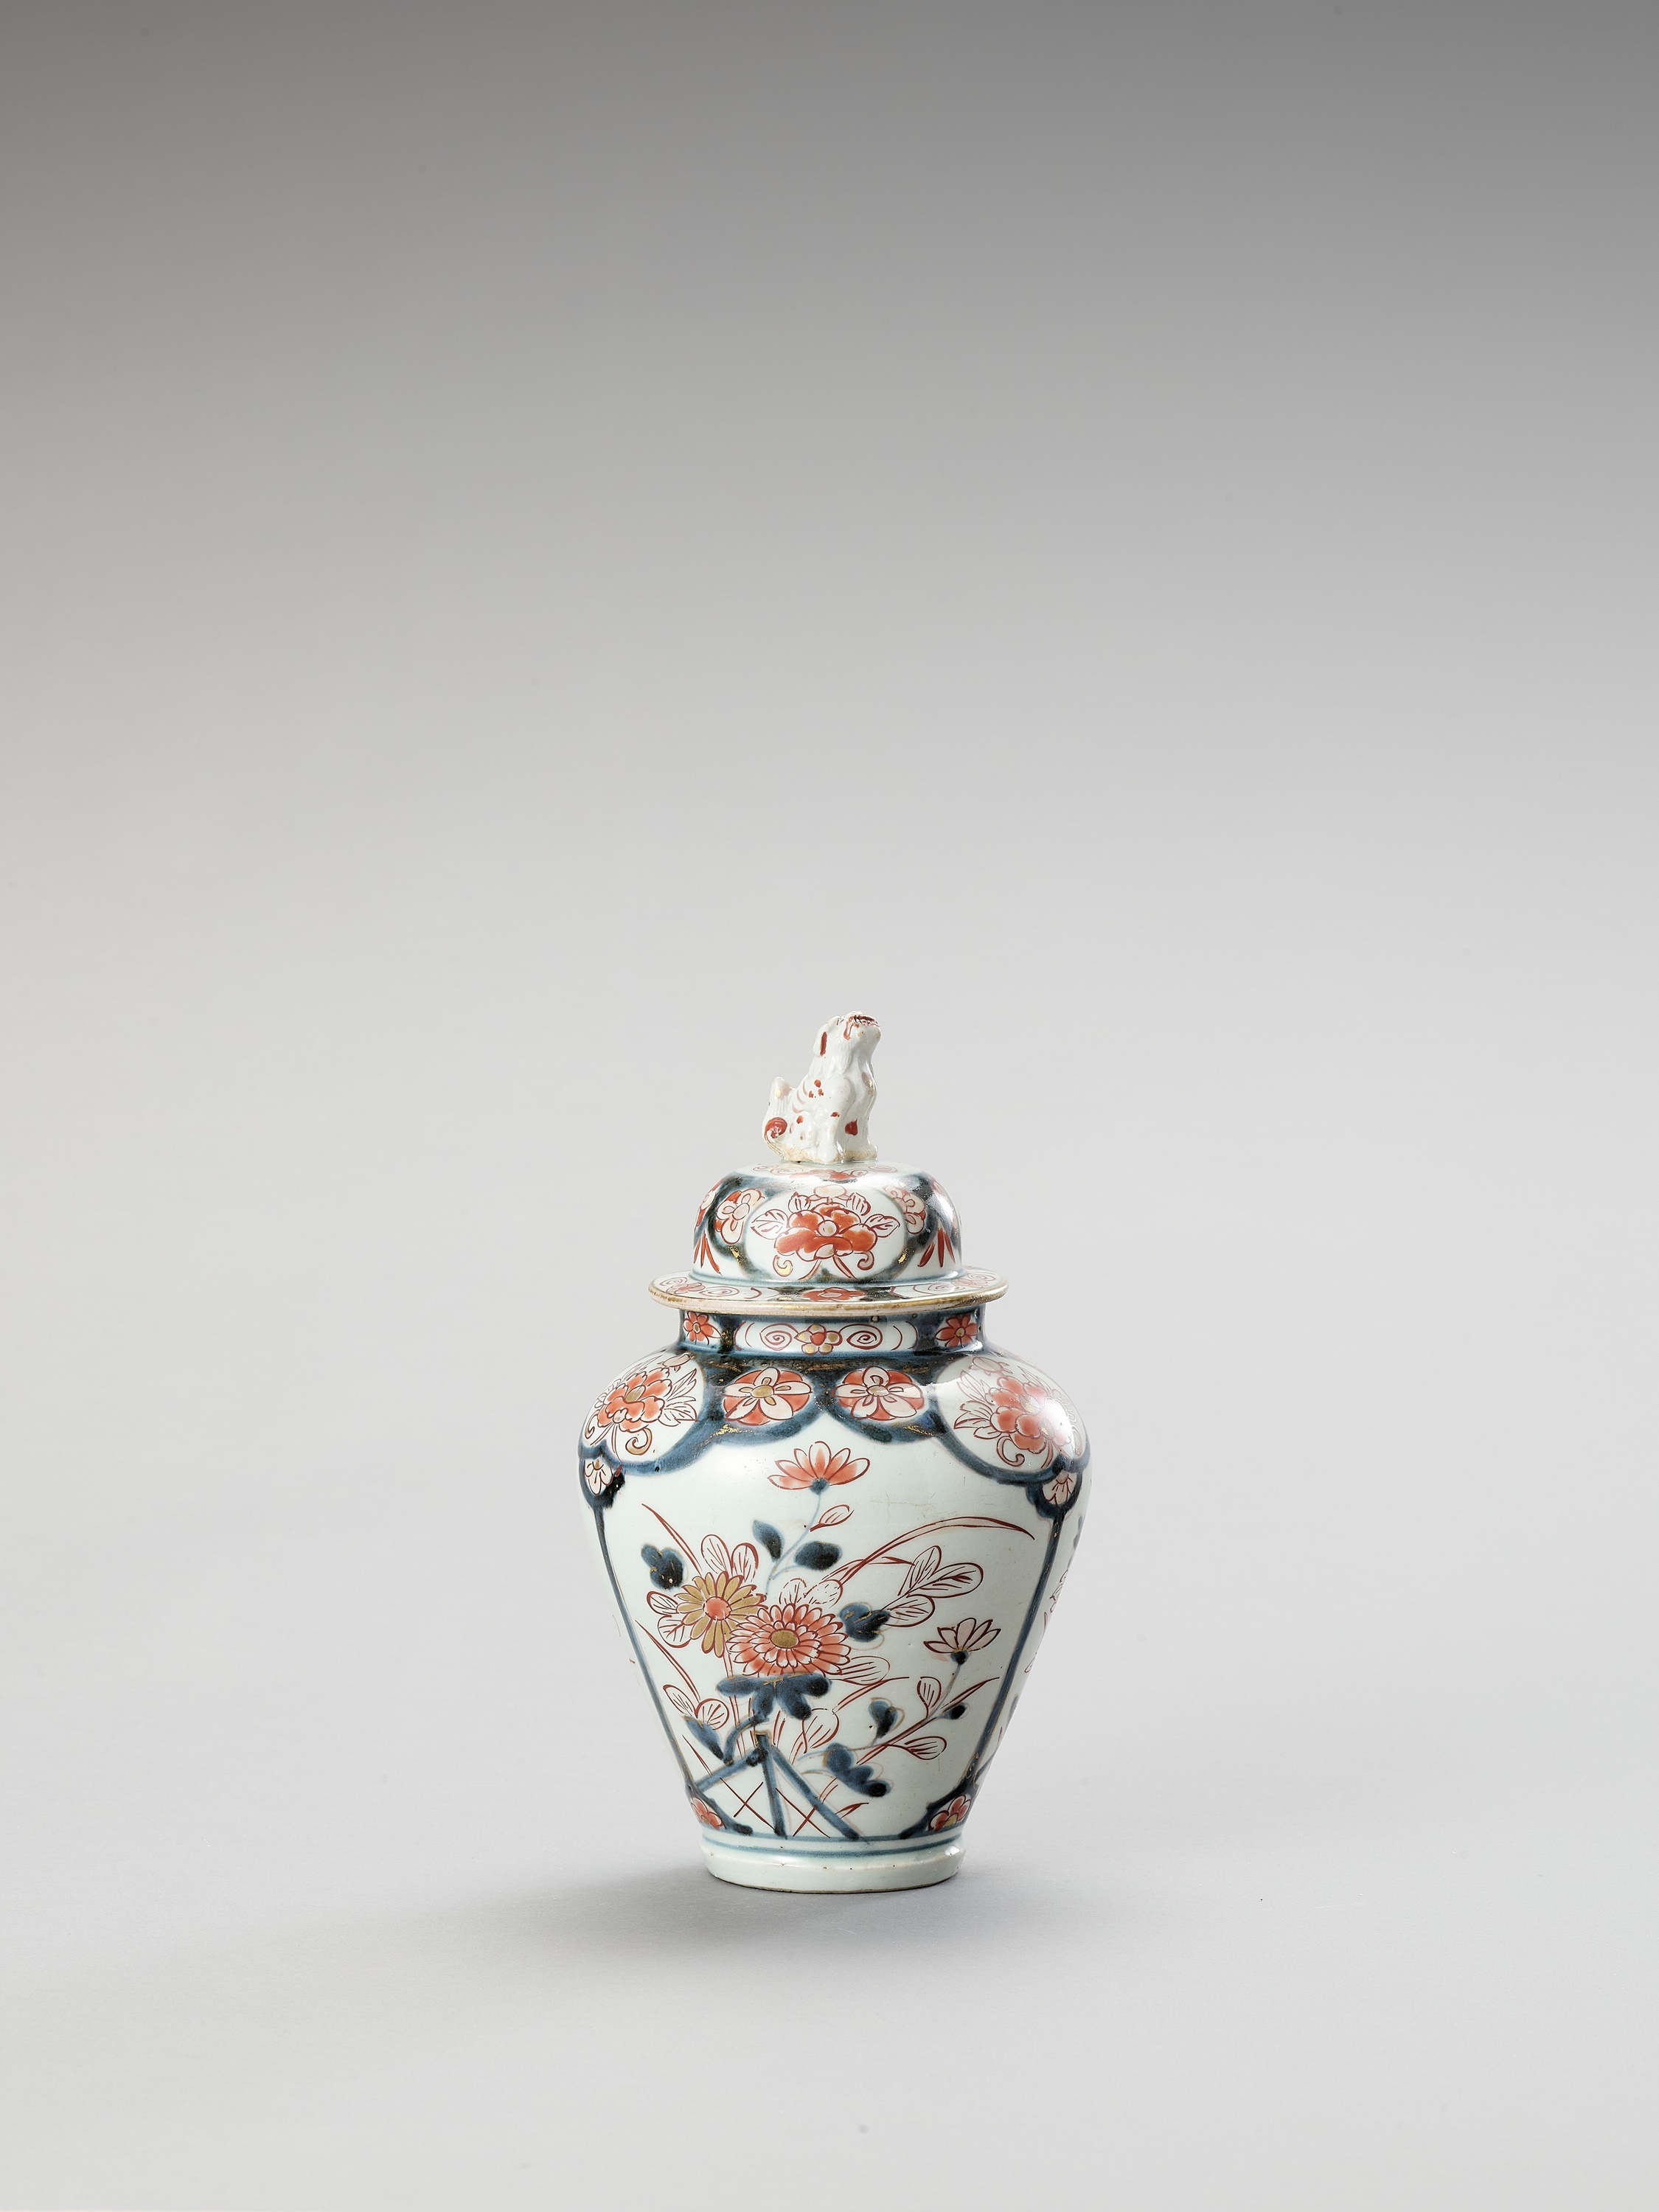 AN IMARI PORCELAIN VASE AND COVER